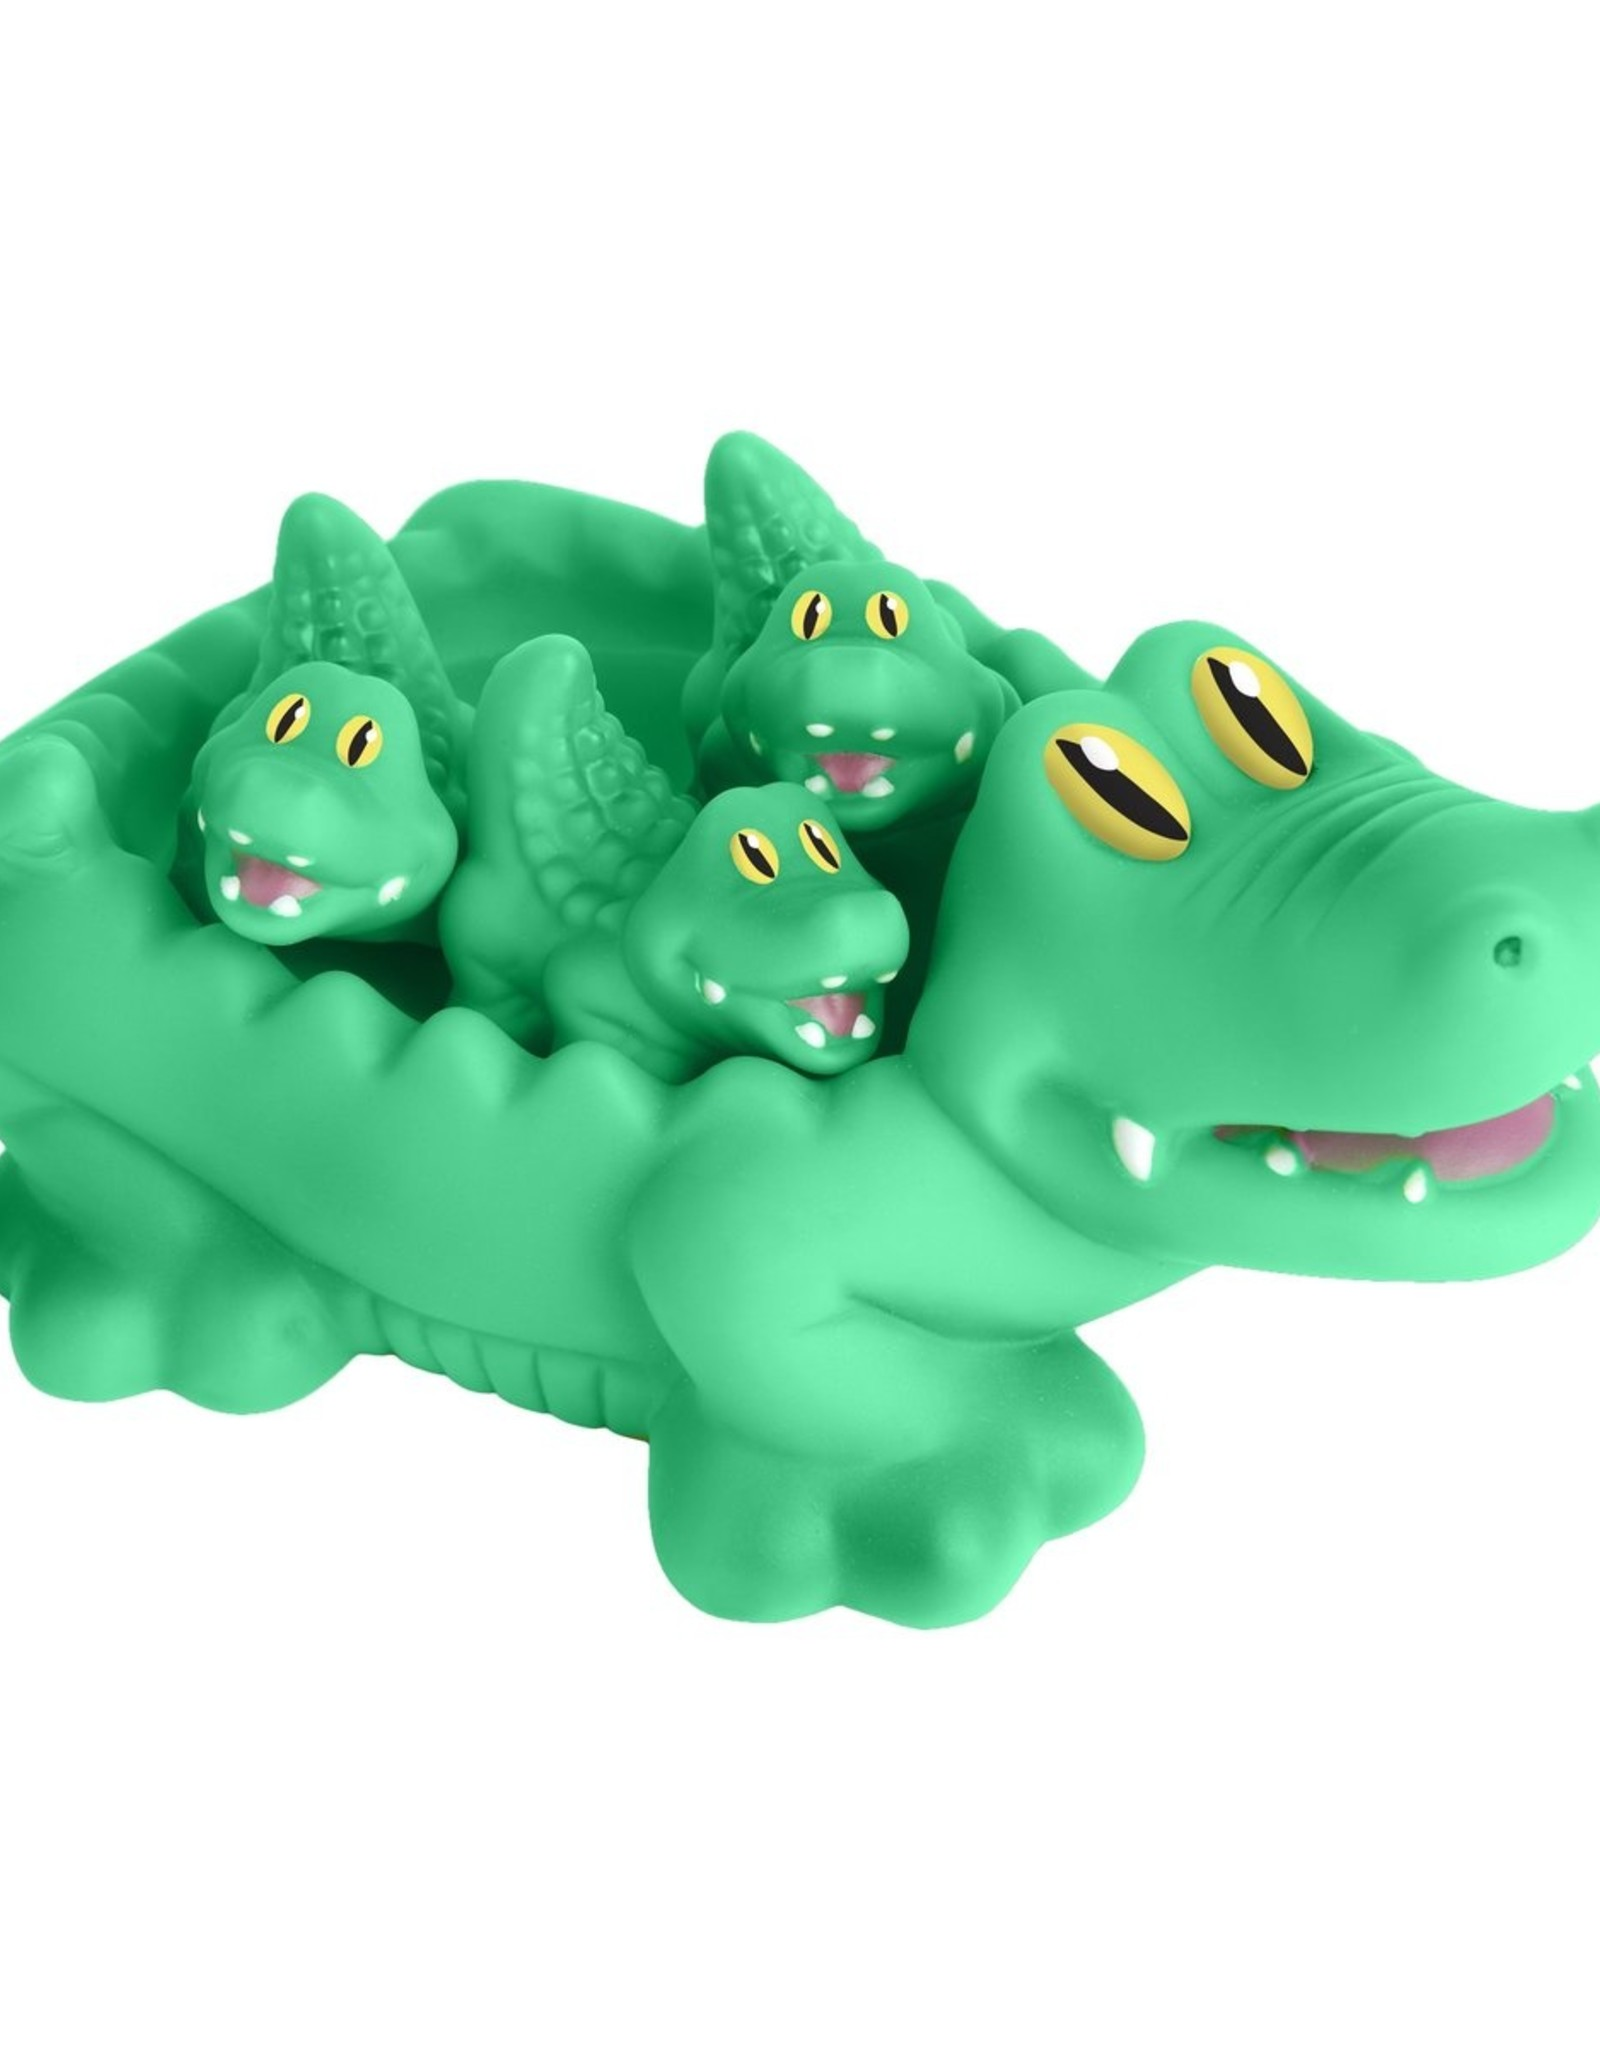 Croc Family Bath Toy